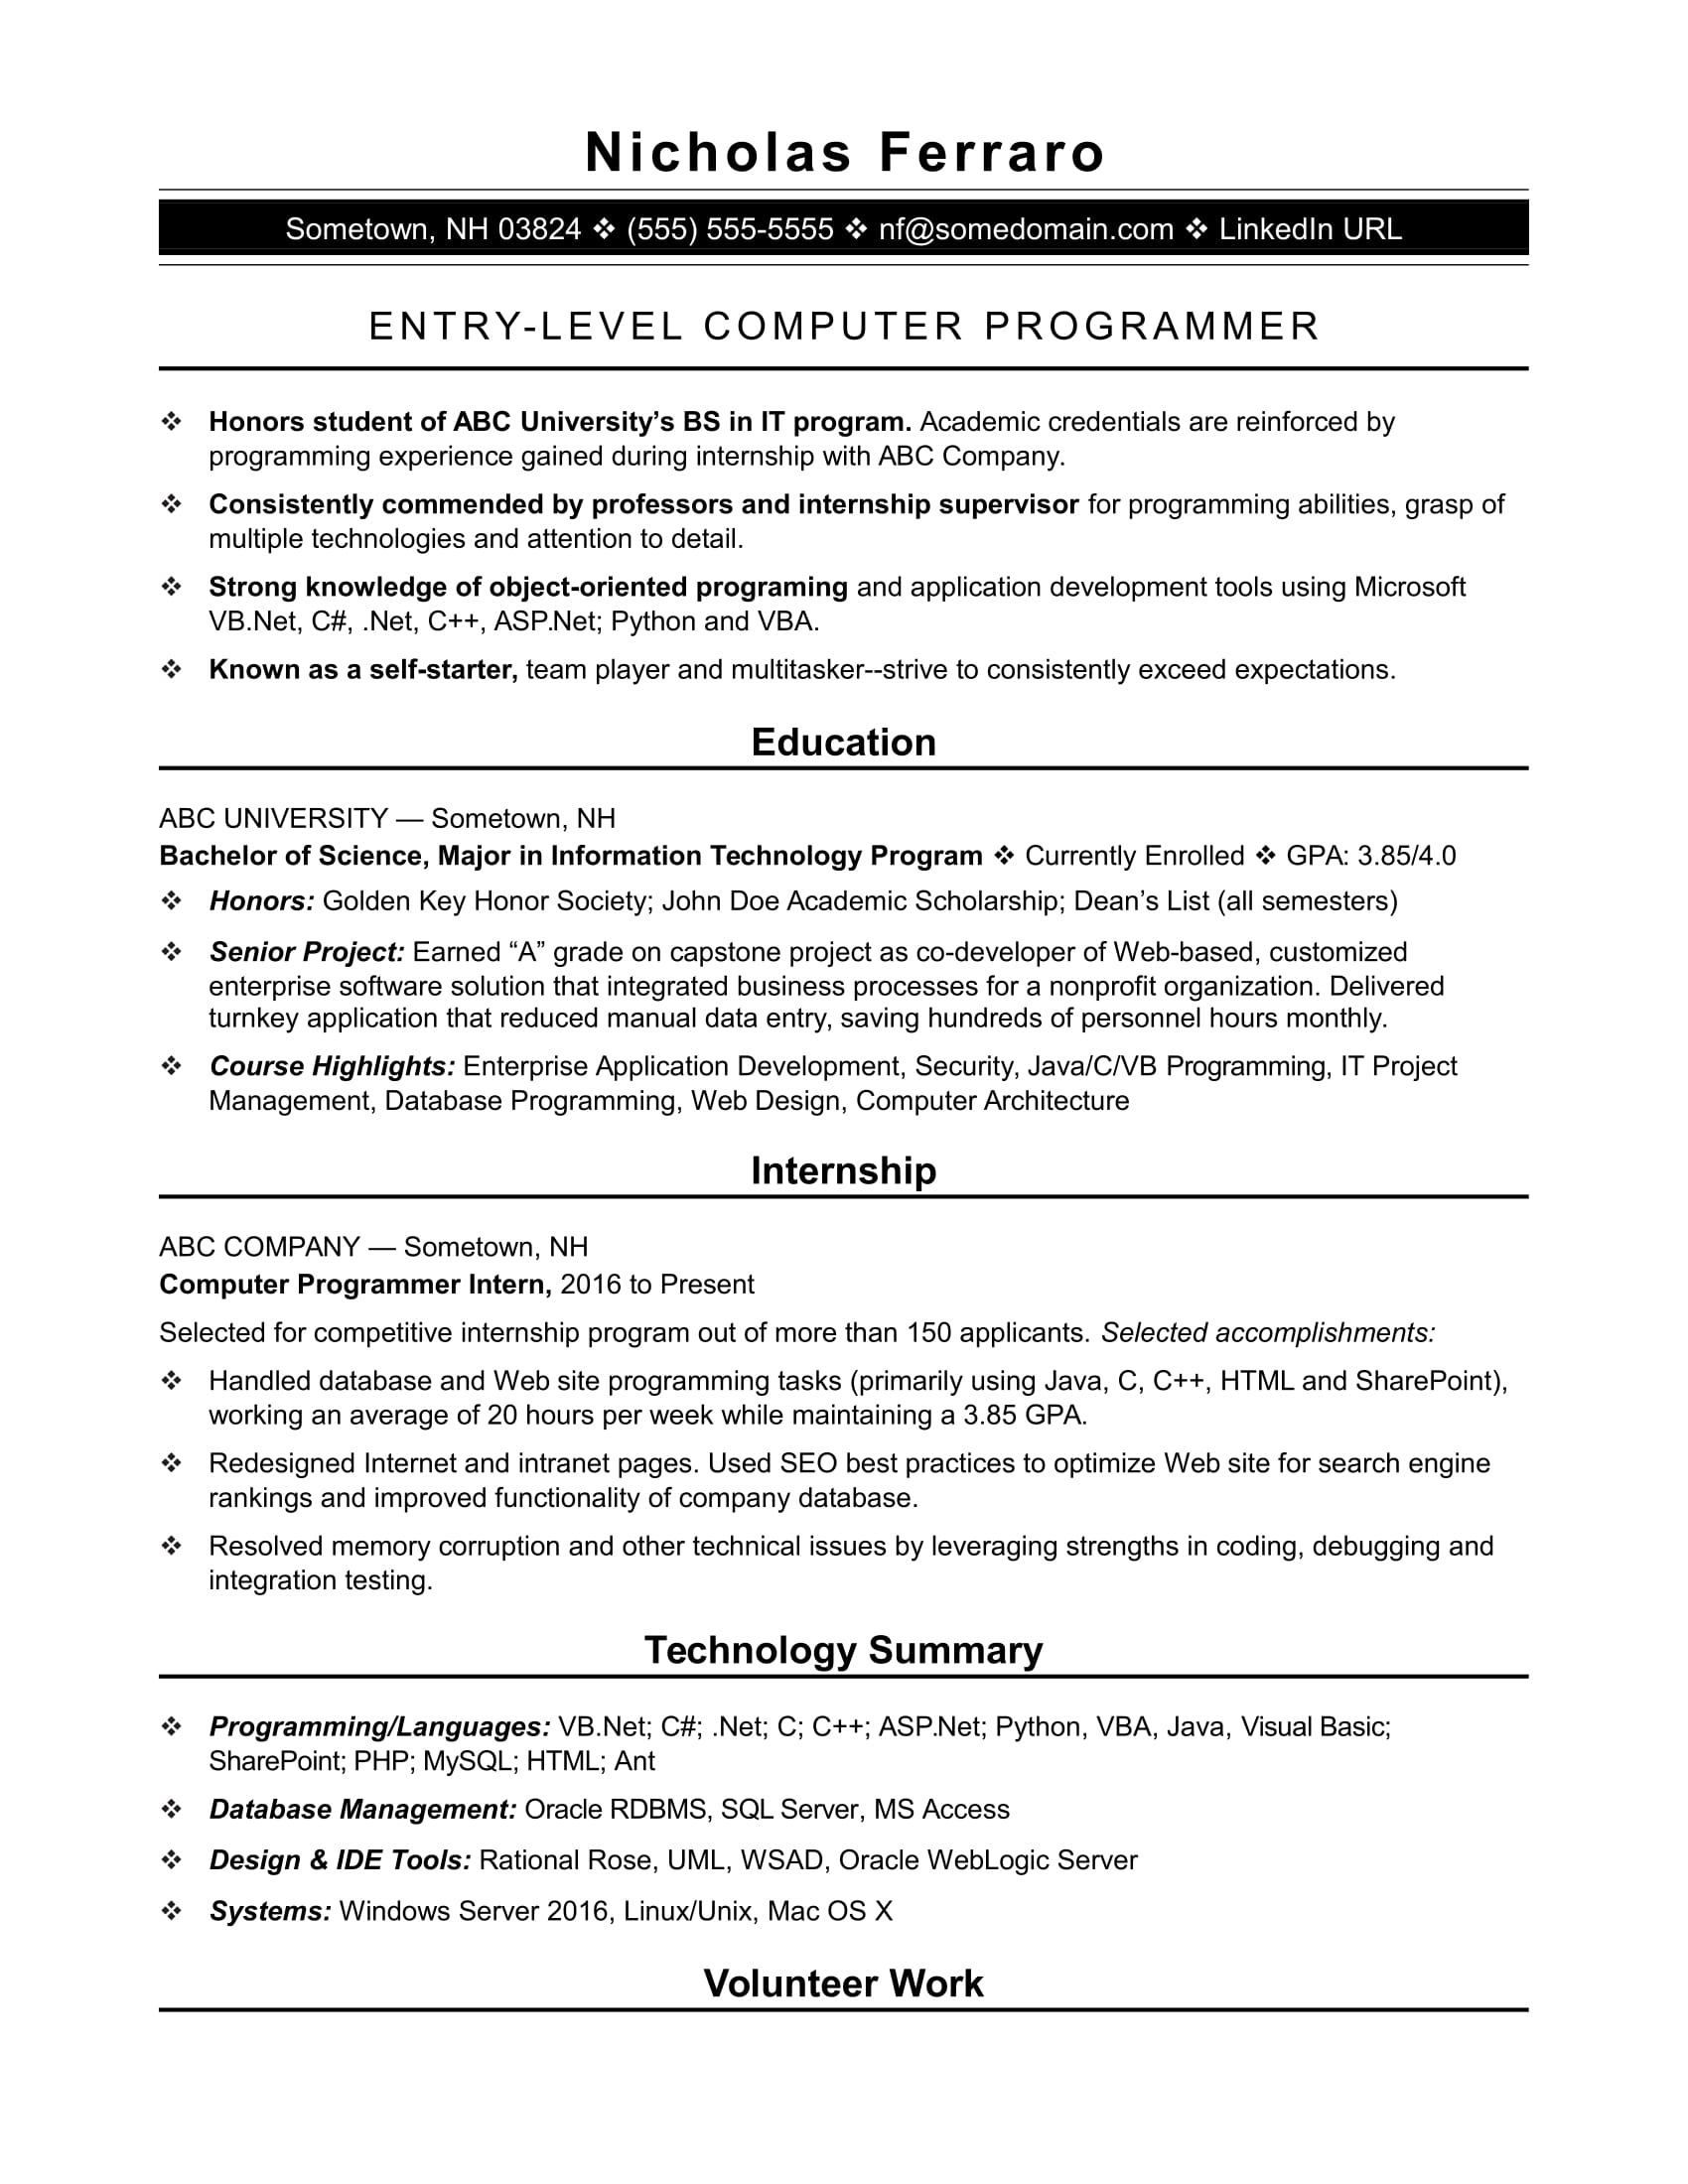 Sample Resume For An Entry Level Computer Programmer Within Entry Level Programmer Resume